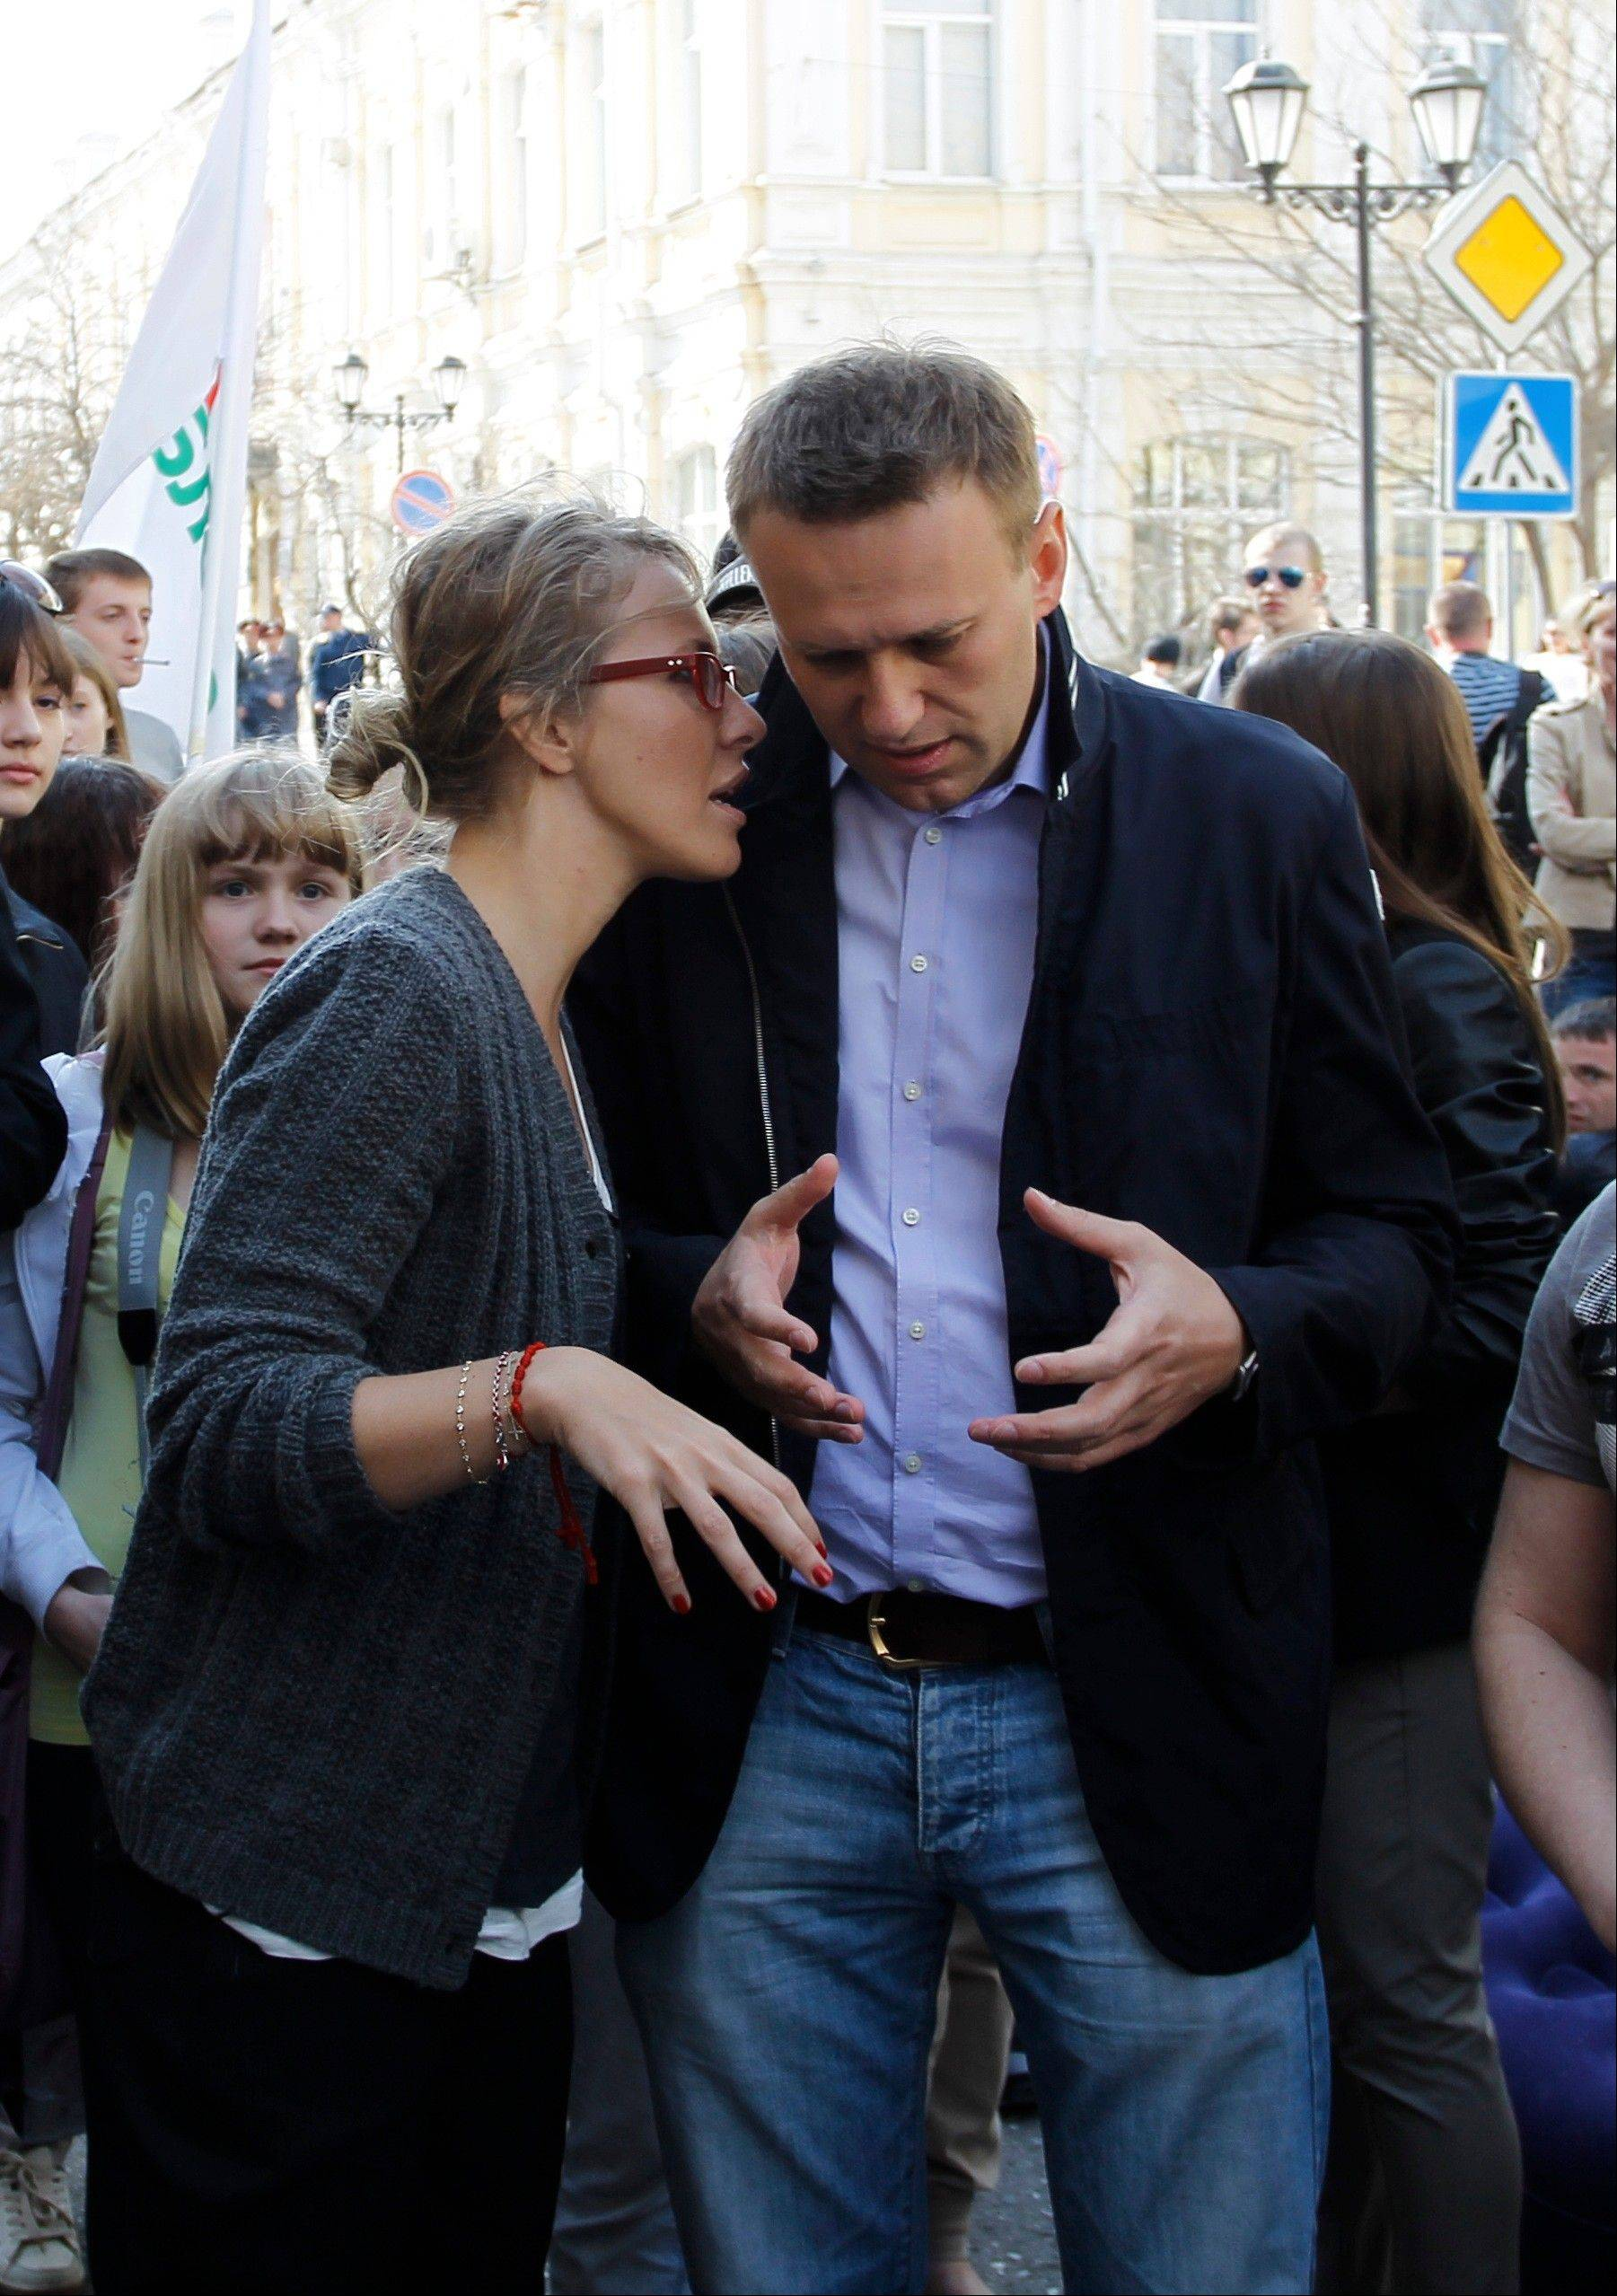 "Russian socialite and TV host Kseniya Sobchak, daughter of the late St. Petersburg mayor, Anatoly Sobchak, left, speaks to anti-corruption campaigner Alexei Navalny during a rally in the southern Russian city of Astrakhan on April 14. ""I'm Ksenia Sobchak, and I've got something to lose. But I'm here."" This is what the 30-year-old blond socialite and TV personality said when she began her unlikely foray into political activism by taking the stage at a huge anti-Putin rally in December. Once considered untouchable because of her family's close personal ties to President Vladimir Putin, Sobchak has since found that she does indeed have something to lose, as her apartment has been raided by police and she has been called in for interrogation. It has been a quick change of fortune for Russia's ""It Girl,"" who like many Russians of her generation experienced a civic awakening after many years of political passivity."